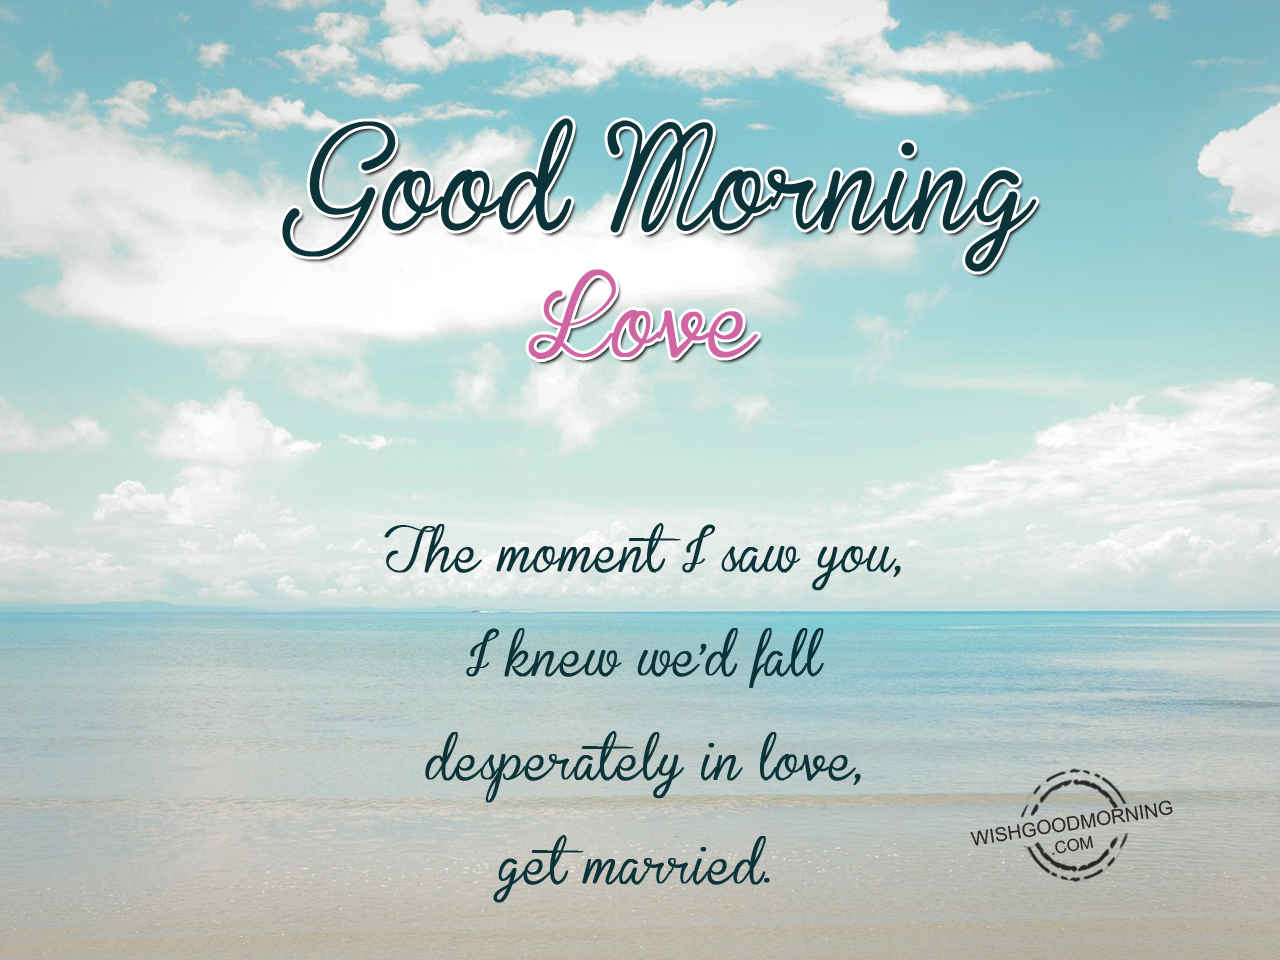 Good Morning Wishes For Boyfriend - Good Morning Pictures